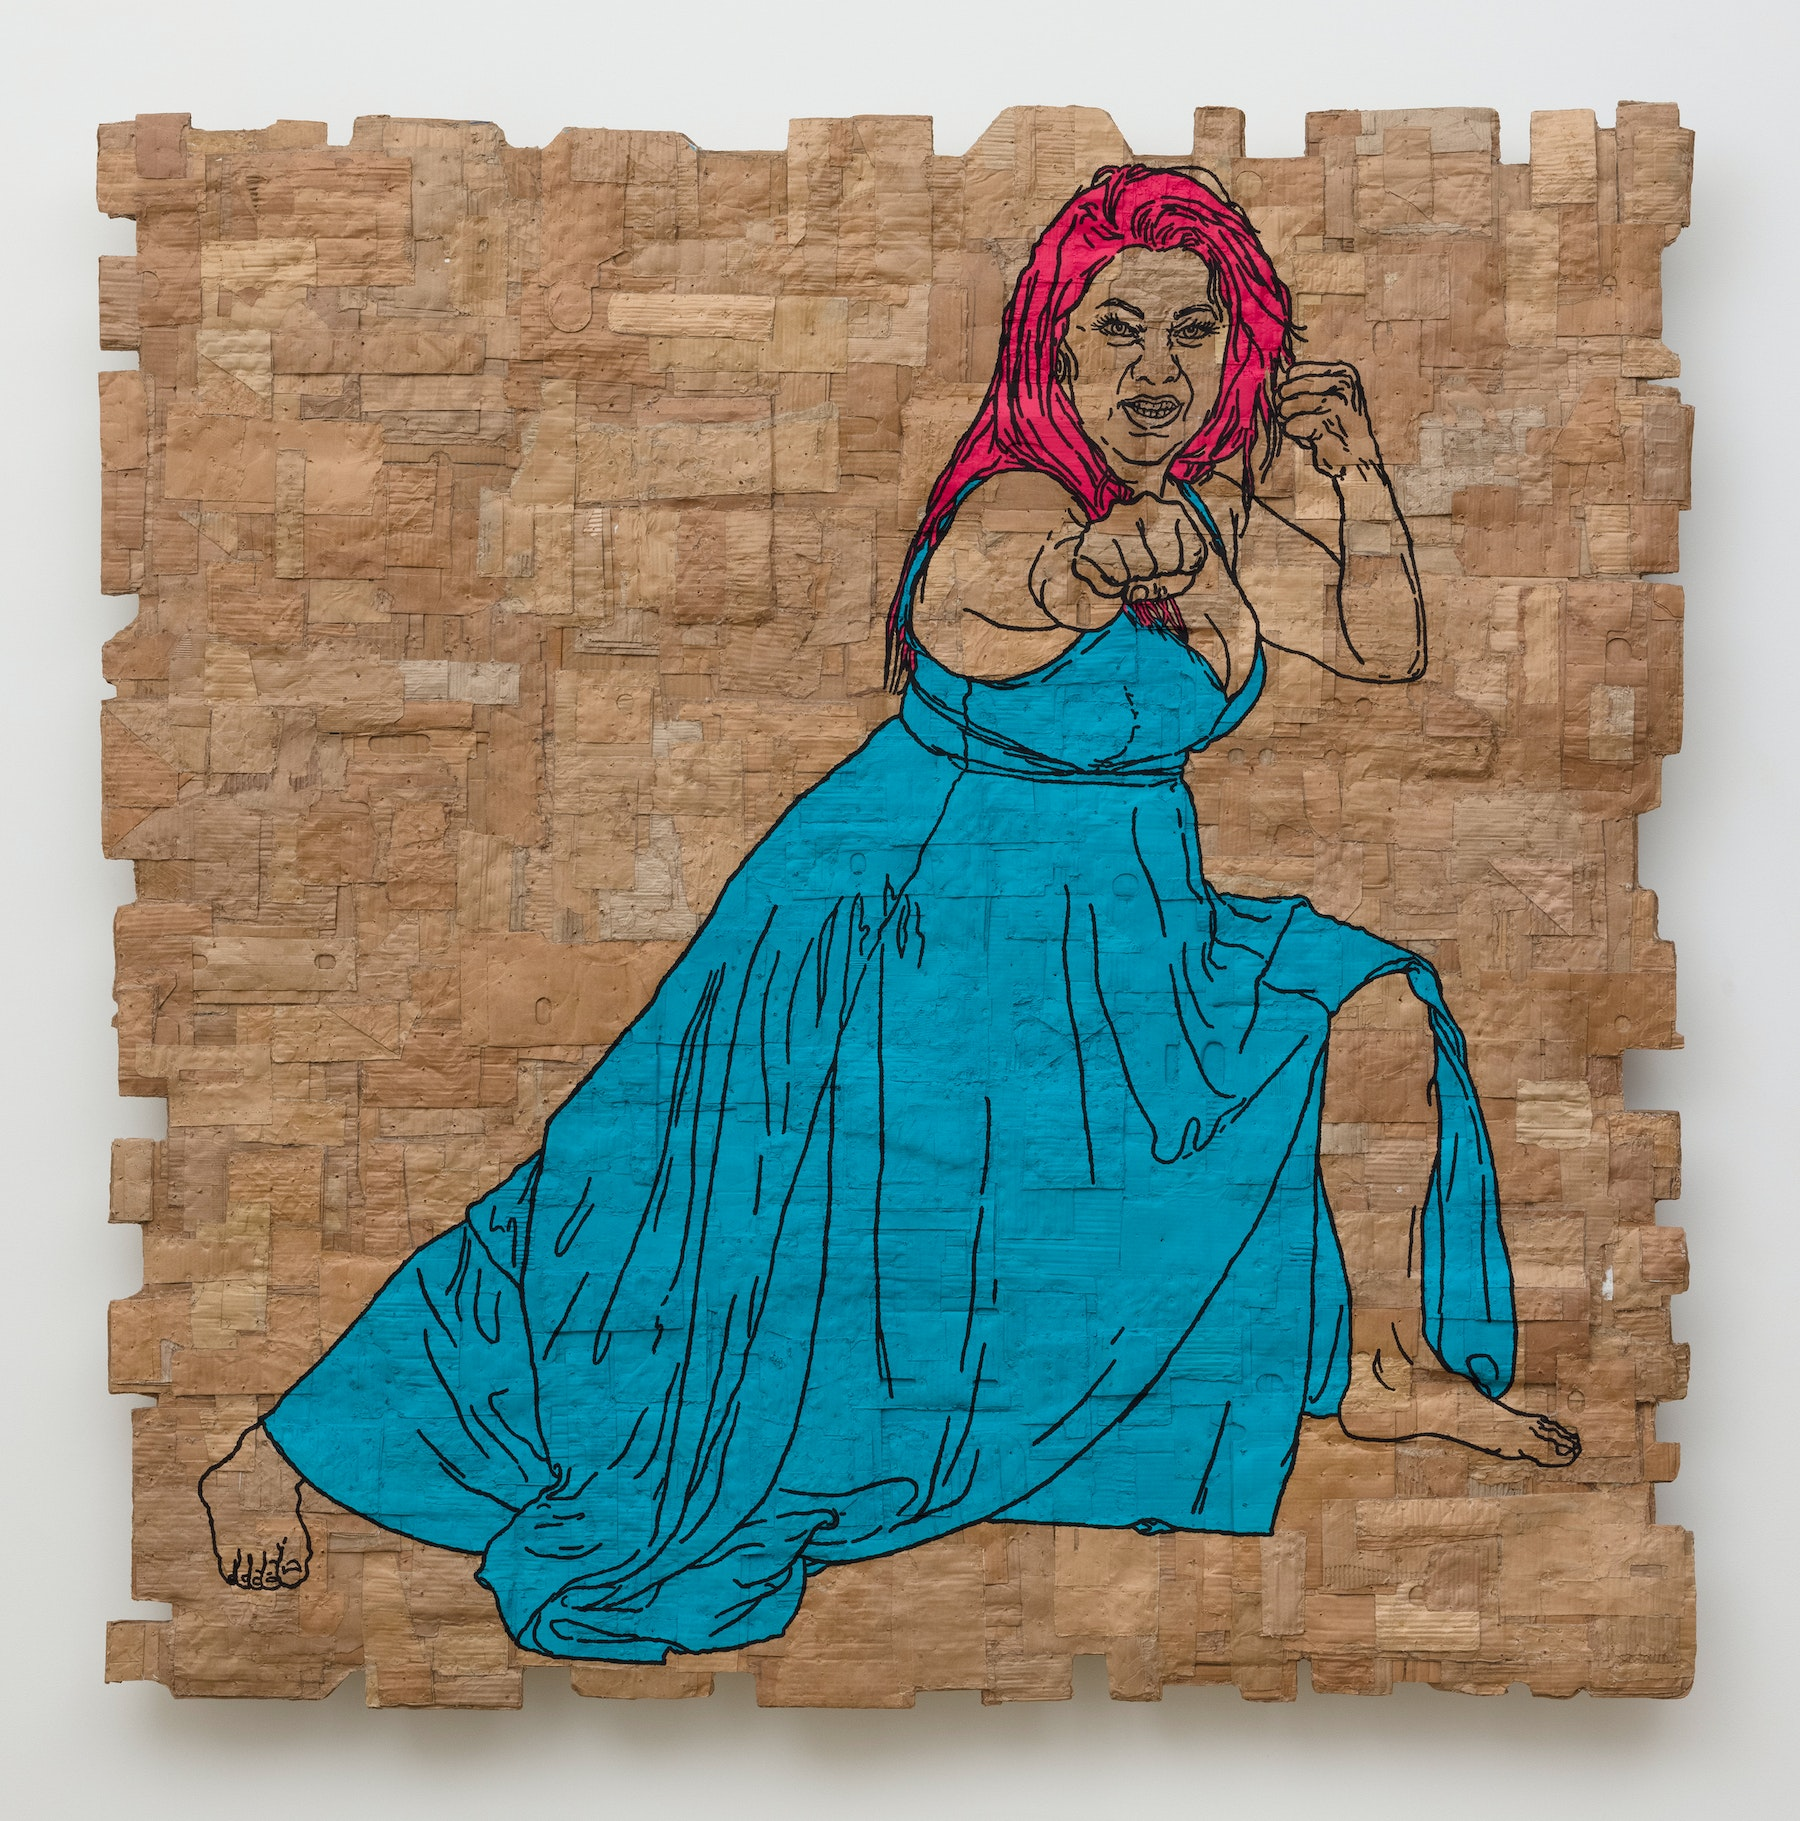 """Andrea Bowers """"Fighting Women, Maritza, Side Punch from an Arrow Stance,"""" 2021 Acrylic and pigment ink on cardboard 84 ¹⁄₂"""" x 84 ¹⁄₂"""" x 5 ¹⁄₂"""" [HxWxD] (214.63 x 214.63 x 13.97 cm) Inventory #BOW579 Courtesy of the artist and Vielmetter Los Angeles Photo credit: Jeff McLane"""